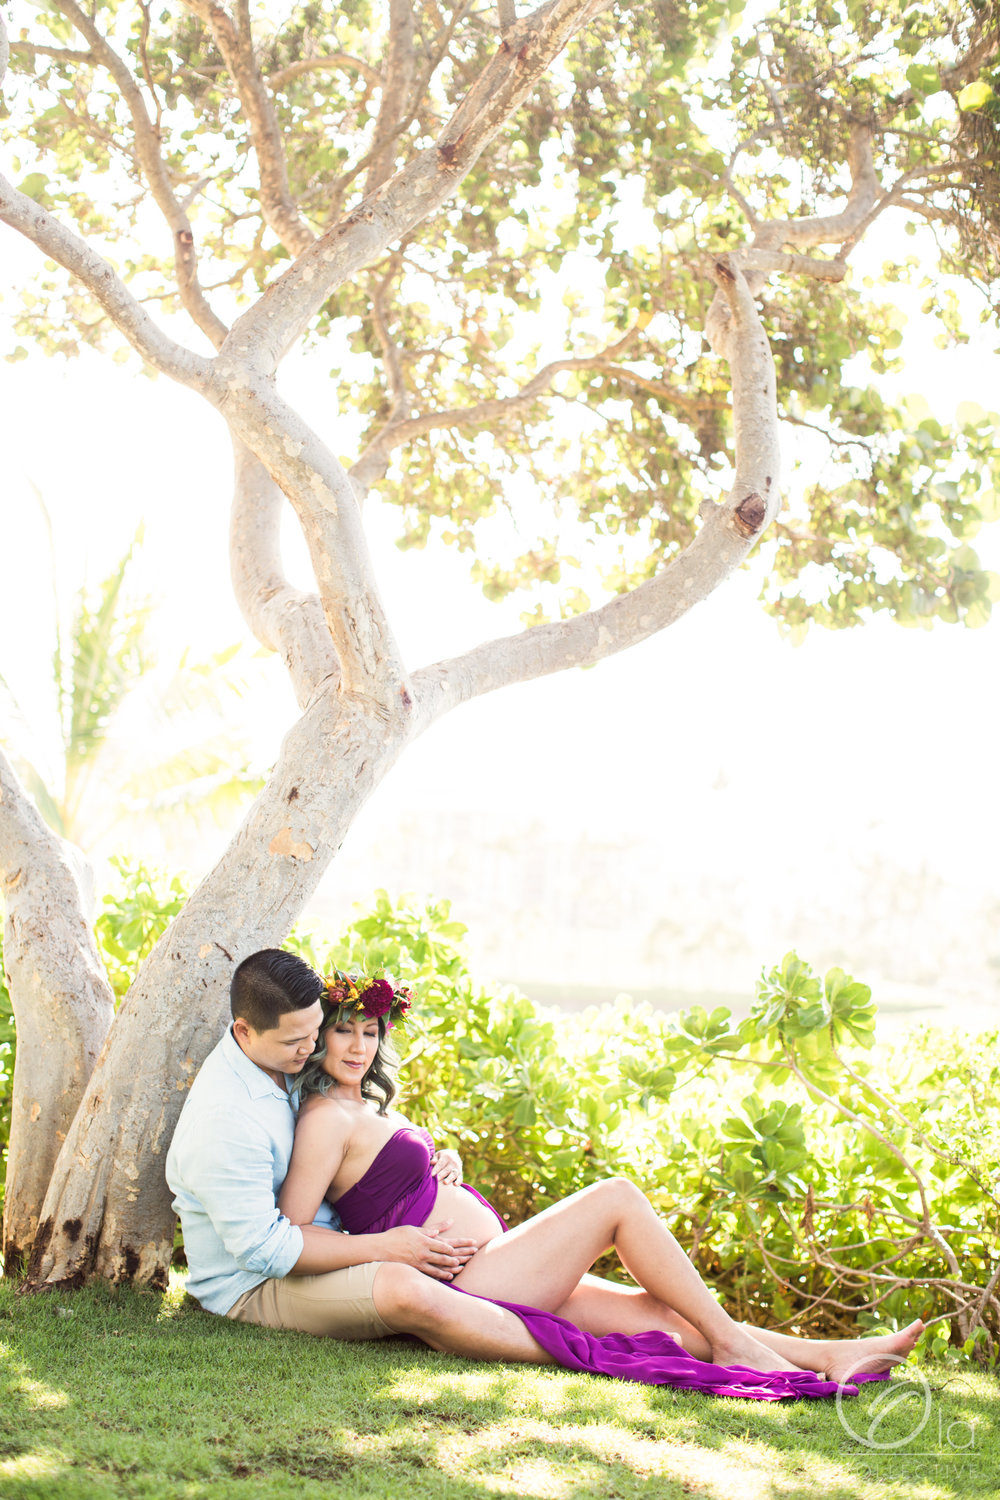 Pohaku point is the perfect area to enjoy a sweet, private moment together.